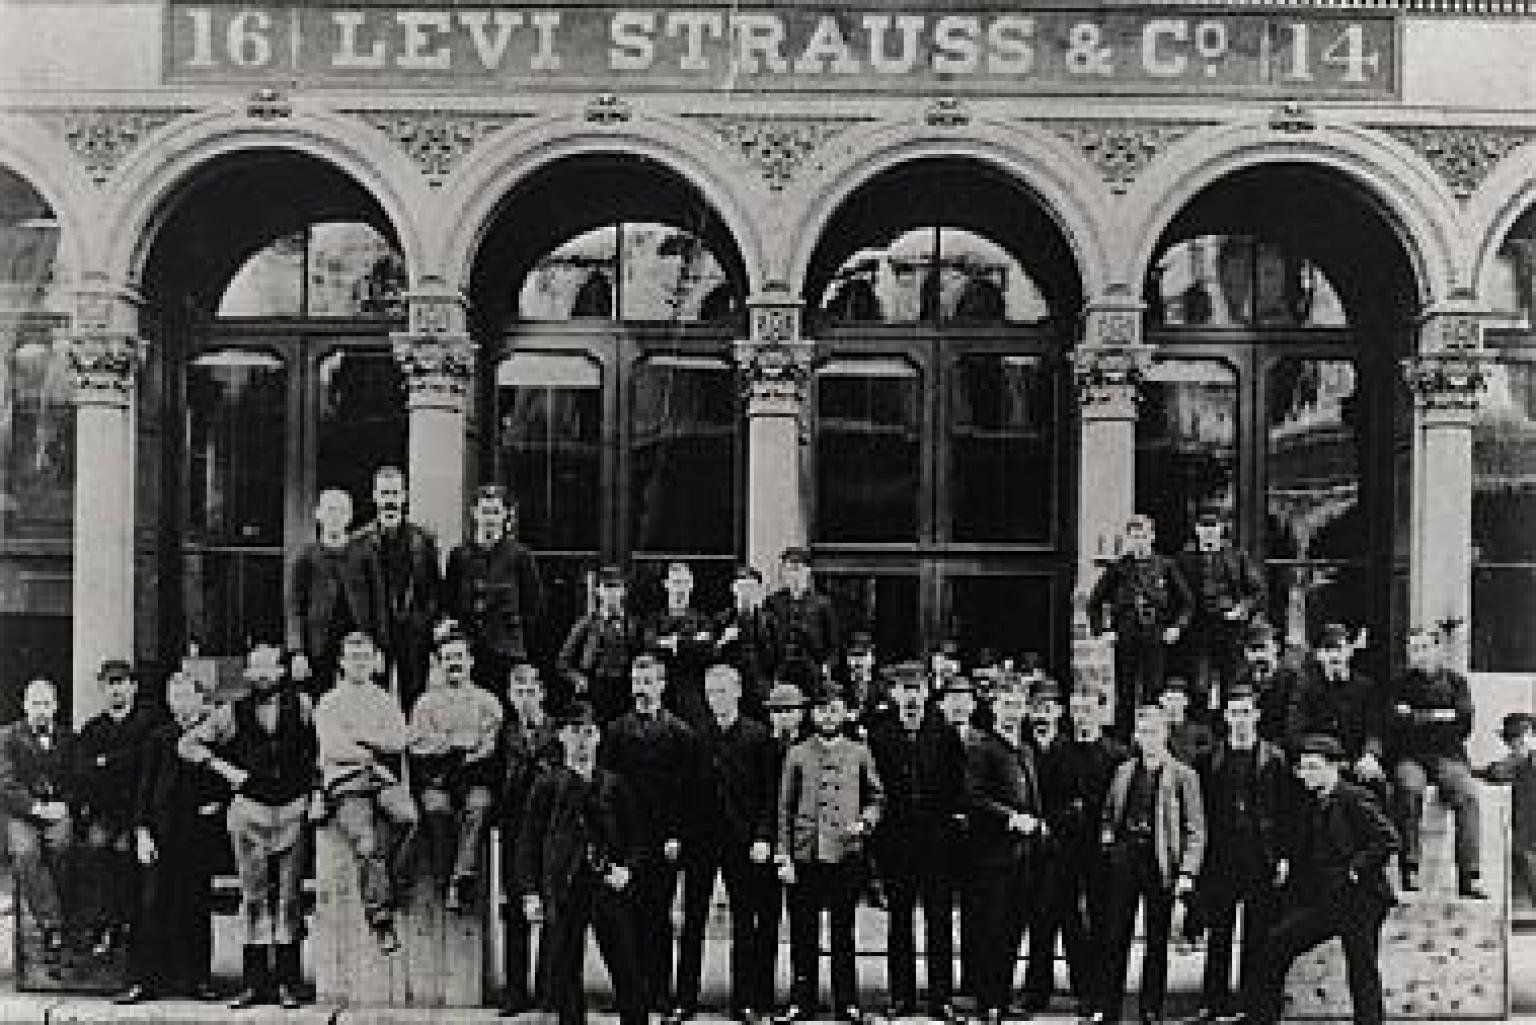 company overview of levi strauss and co Levi strauss & co (ls&co) is an american clothing company founded in california in 1853 the levi strauss foundation (lsf) was established in 1952.